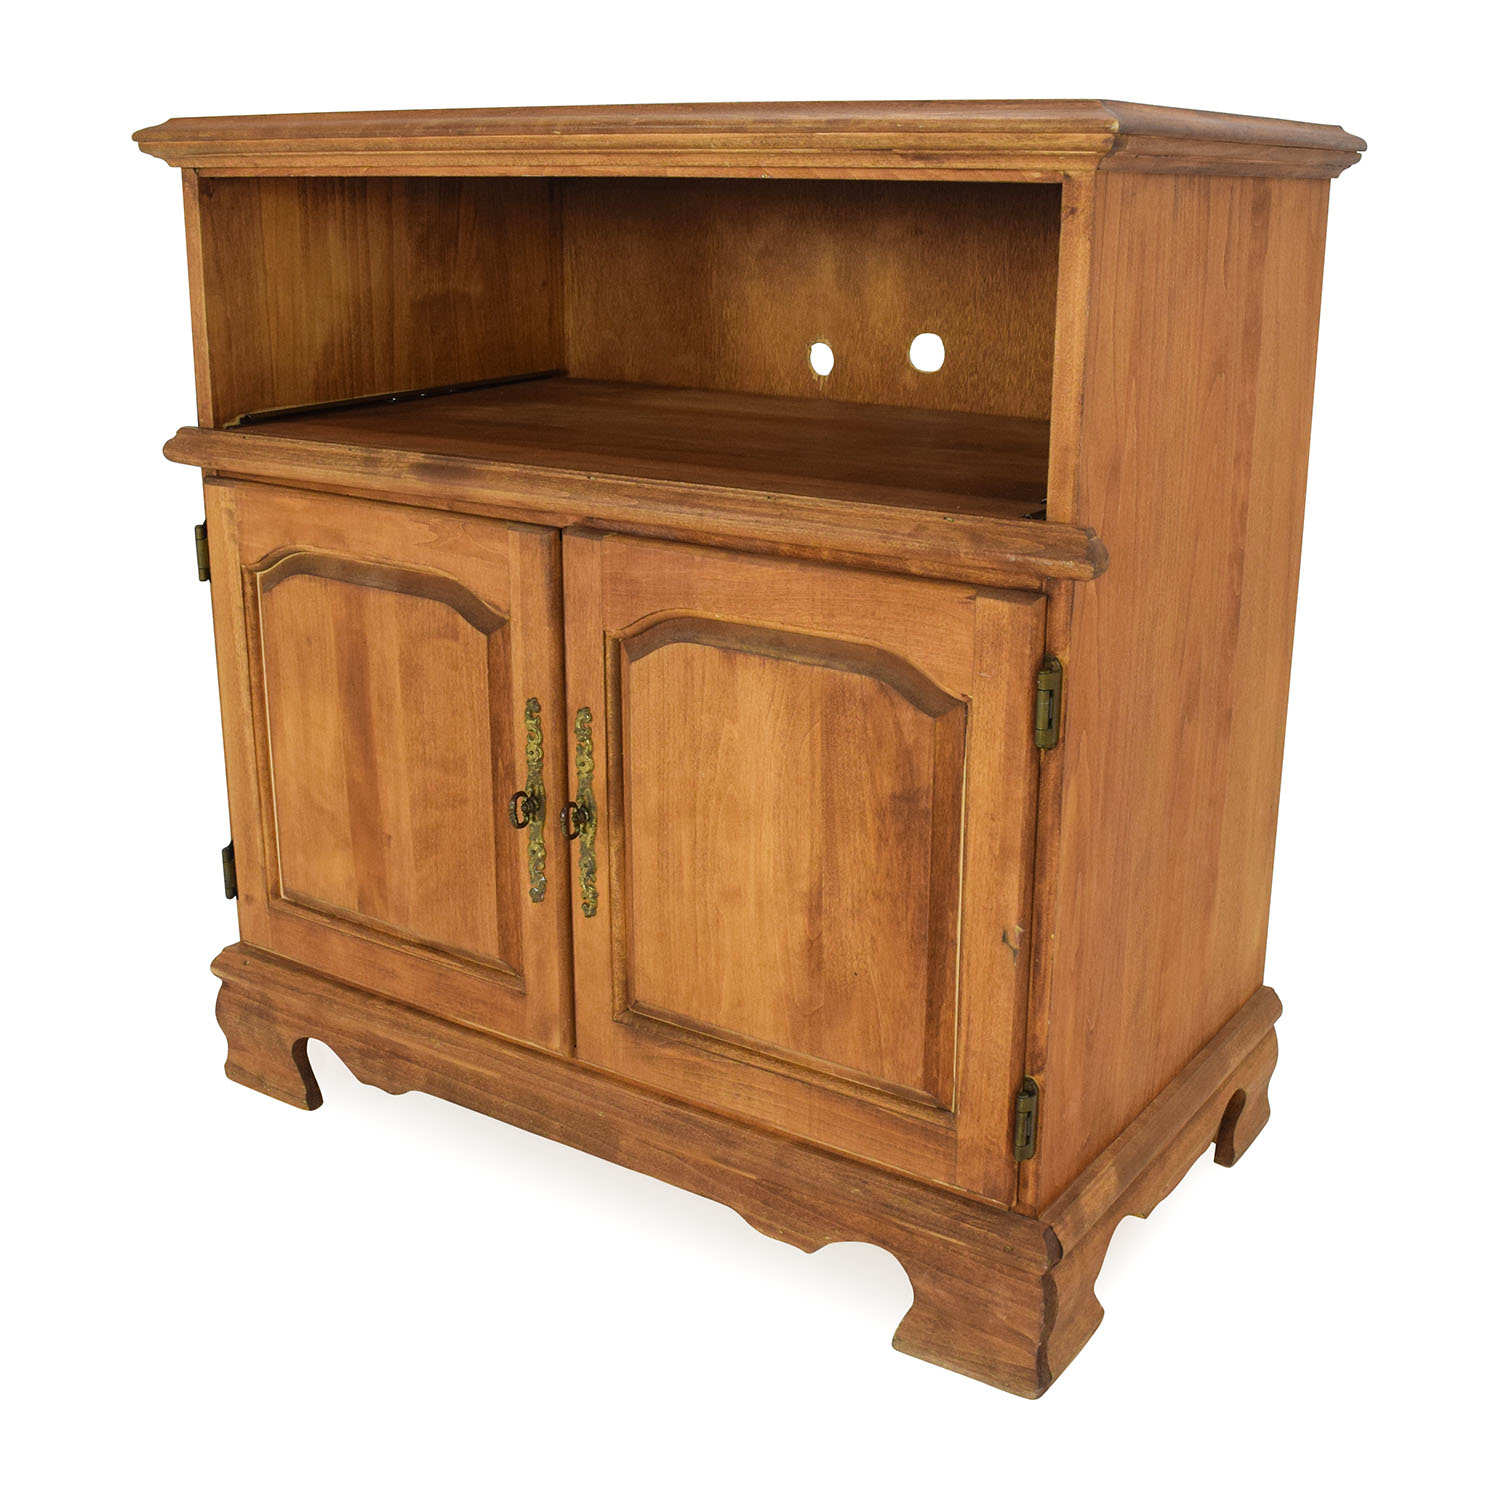 Solid Wood Console Tables With Storage ~ Off solid wood console table storage